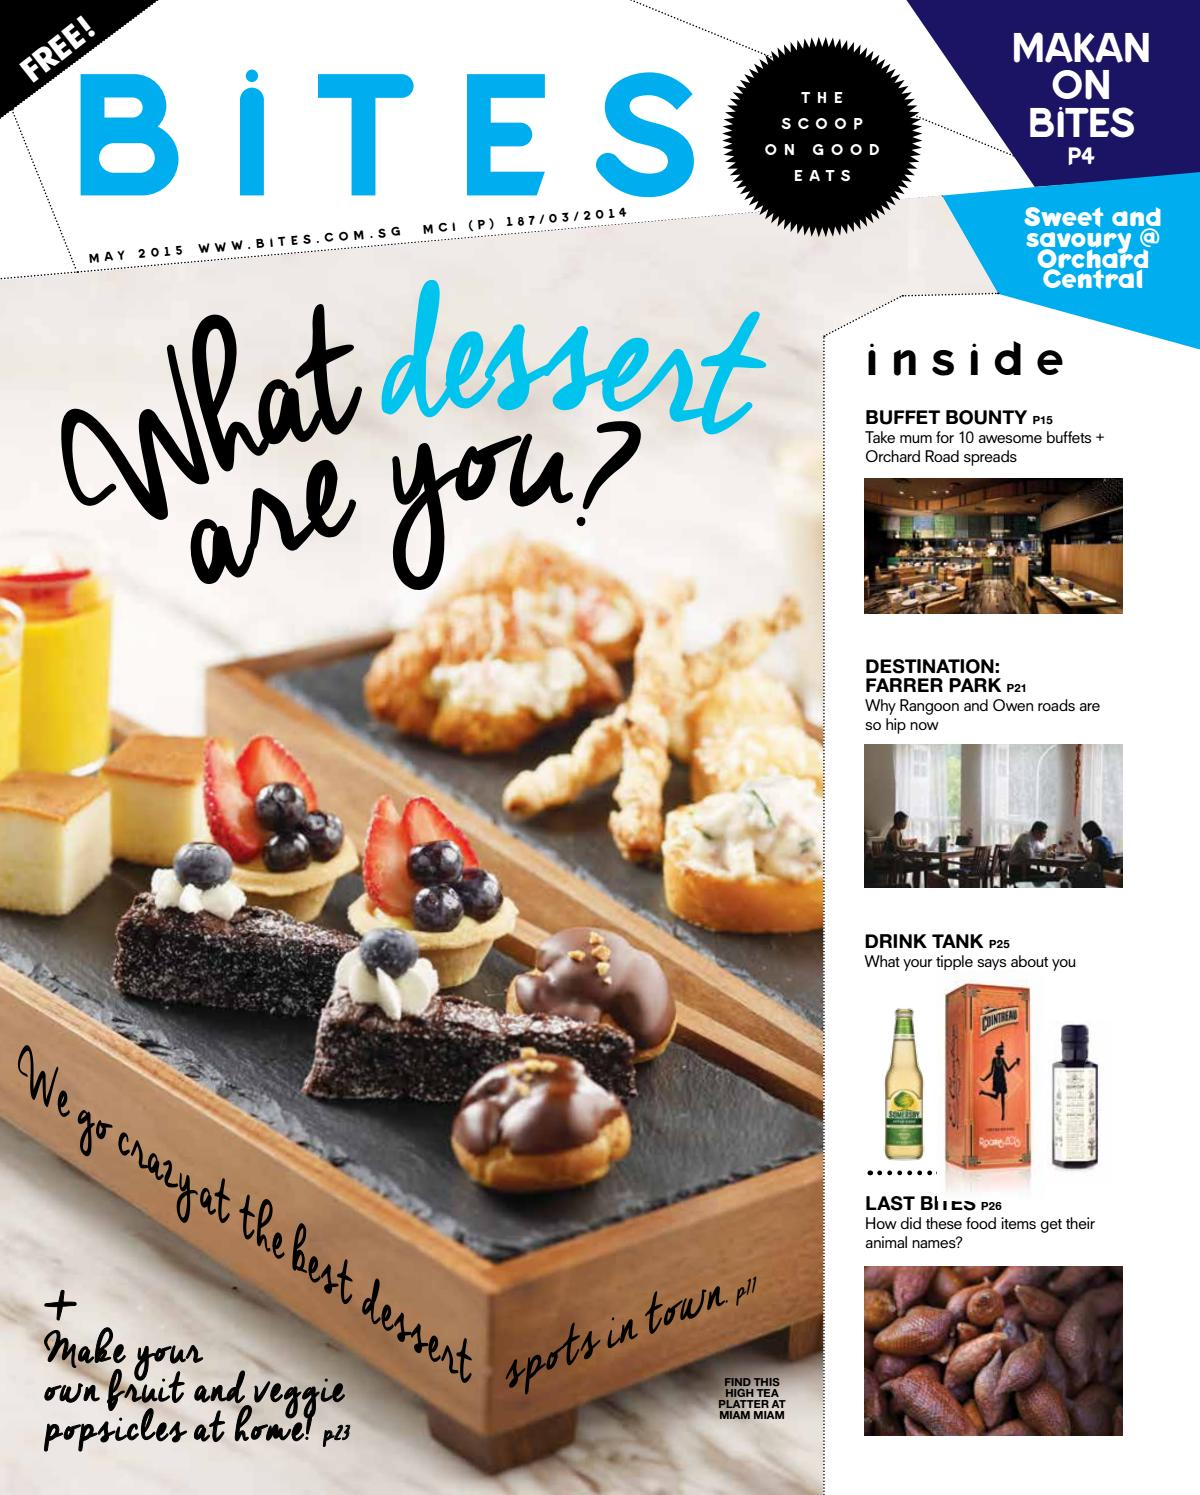 29eb5febe0f08 BiTES - The Scoop on Good Eats (May 2015) by BiTES - The Scoop on ...